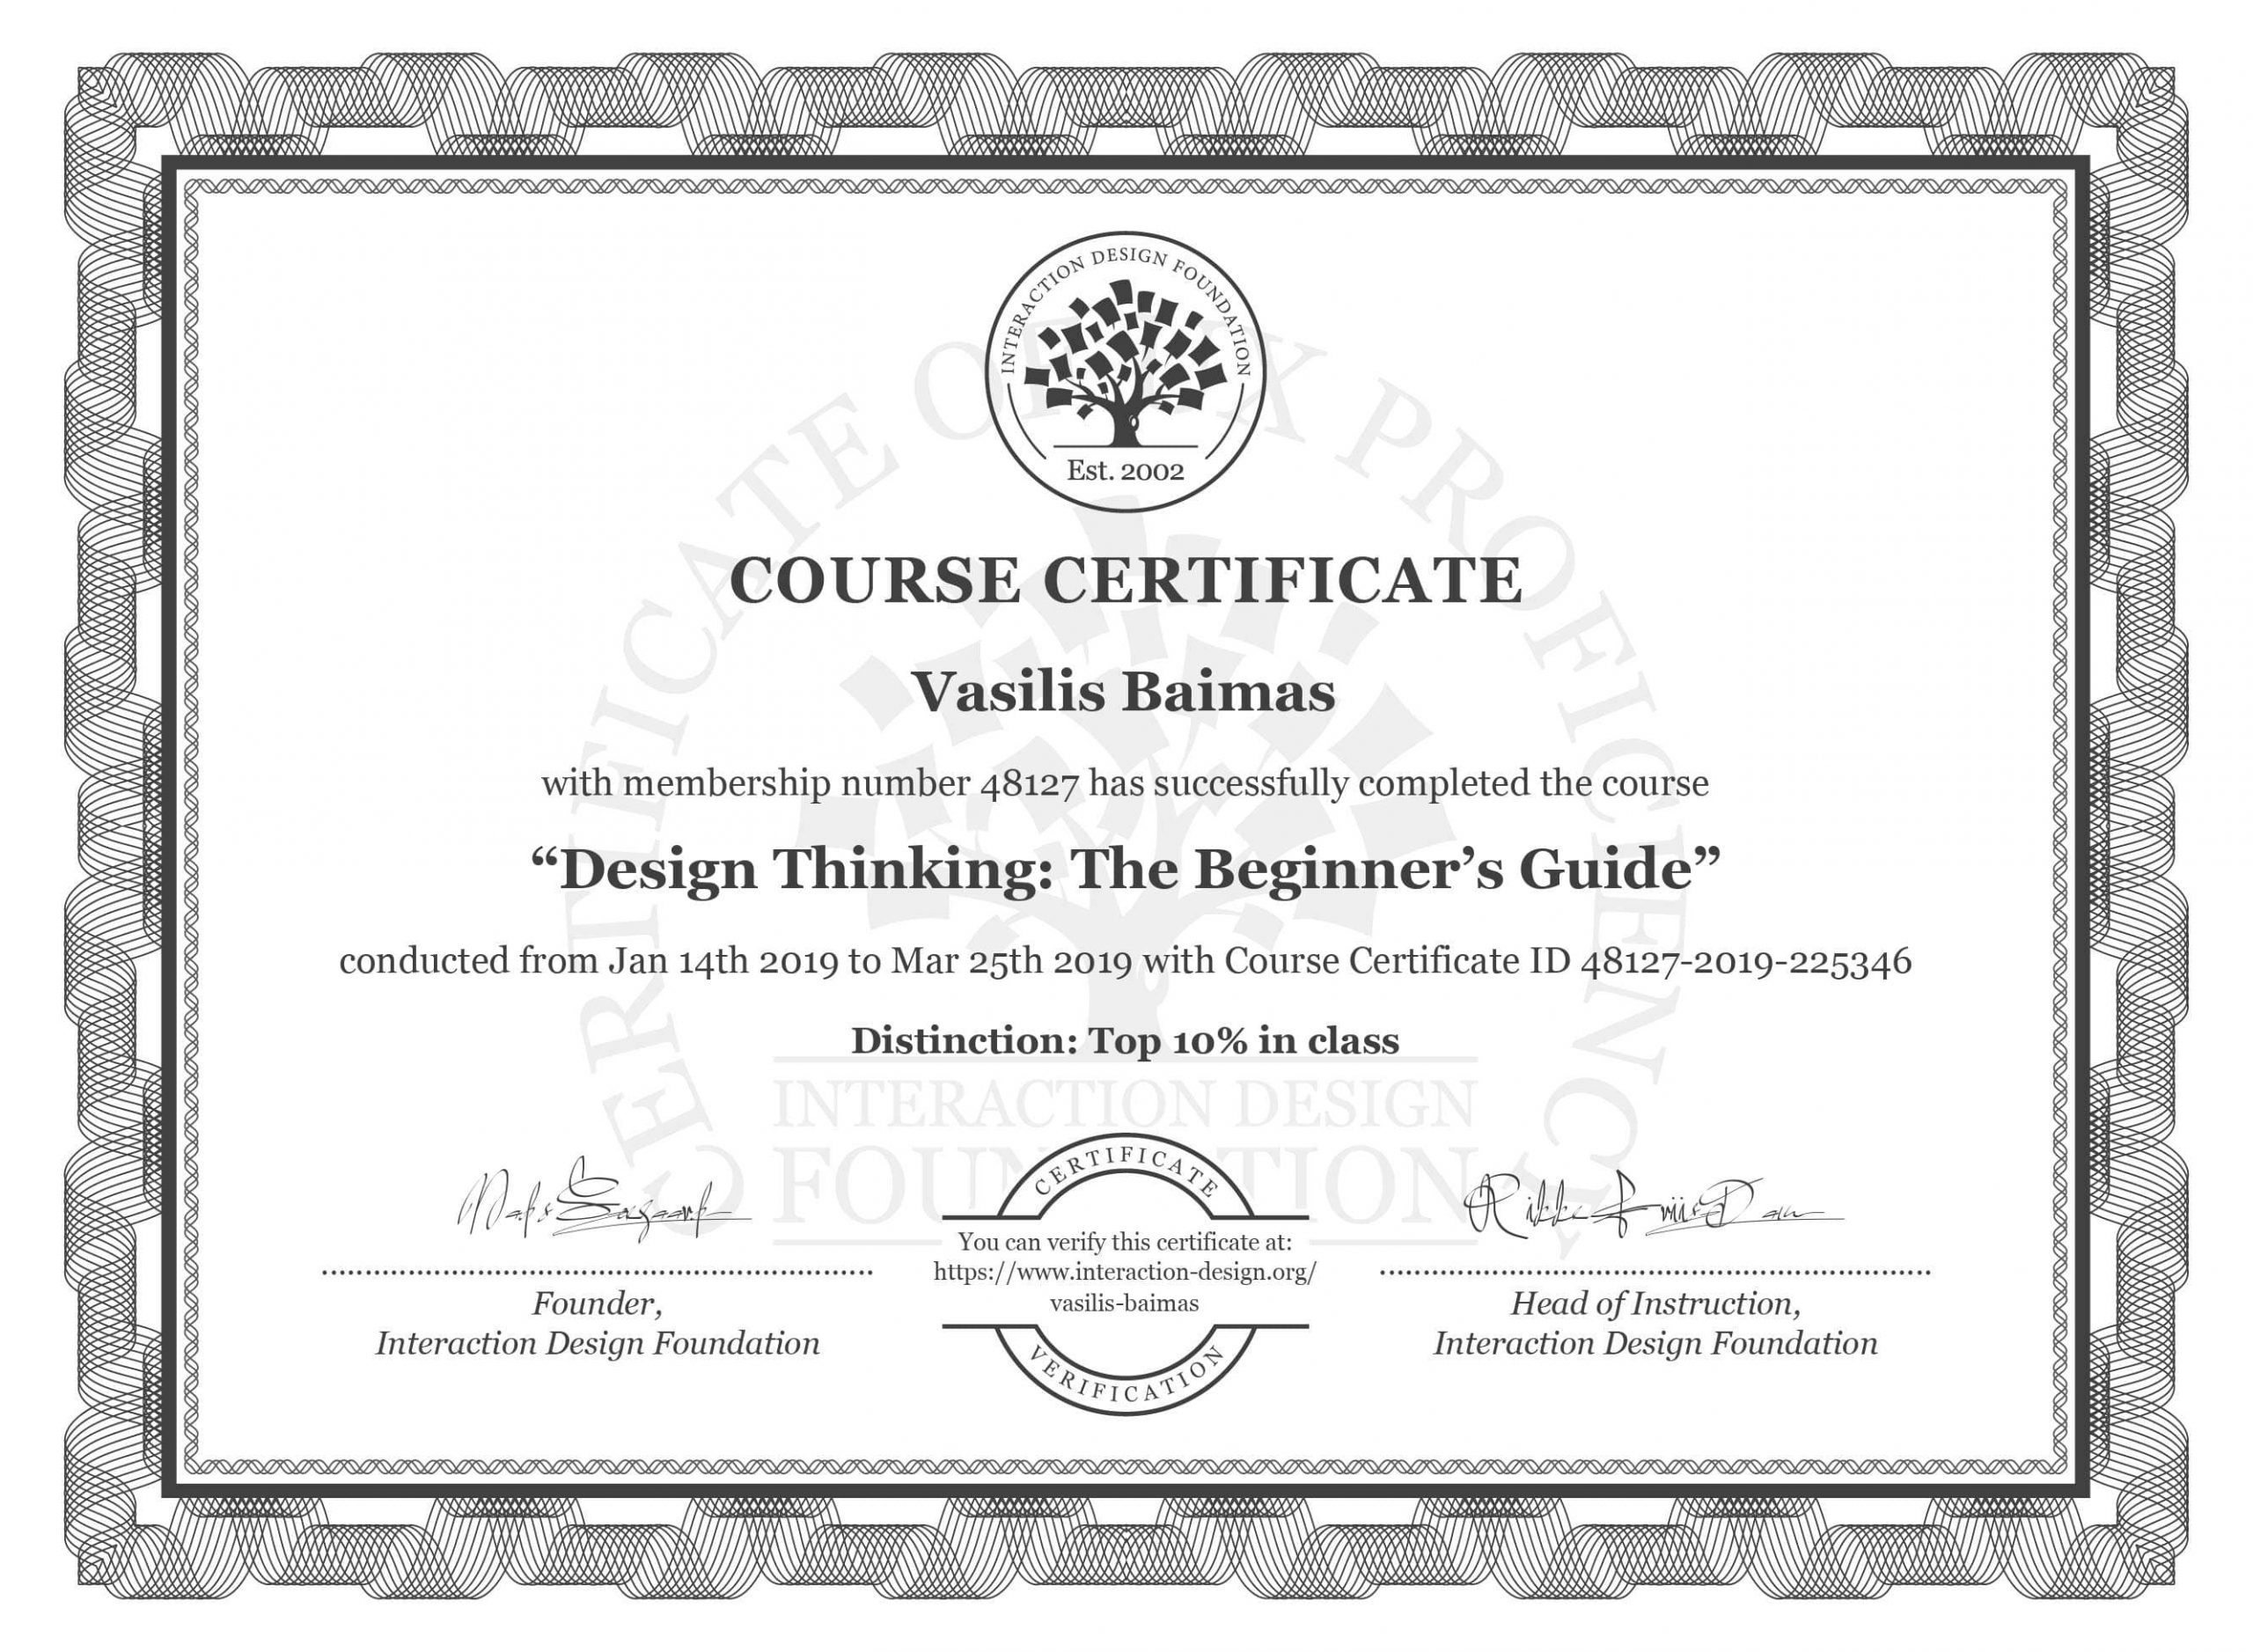 The Certification Of Design Thinking, The beginner's Guide